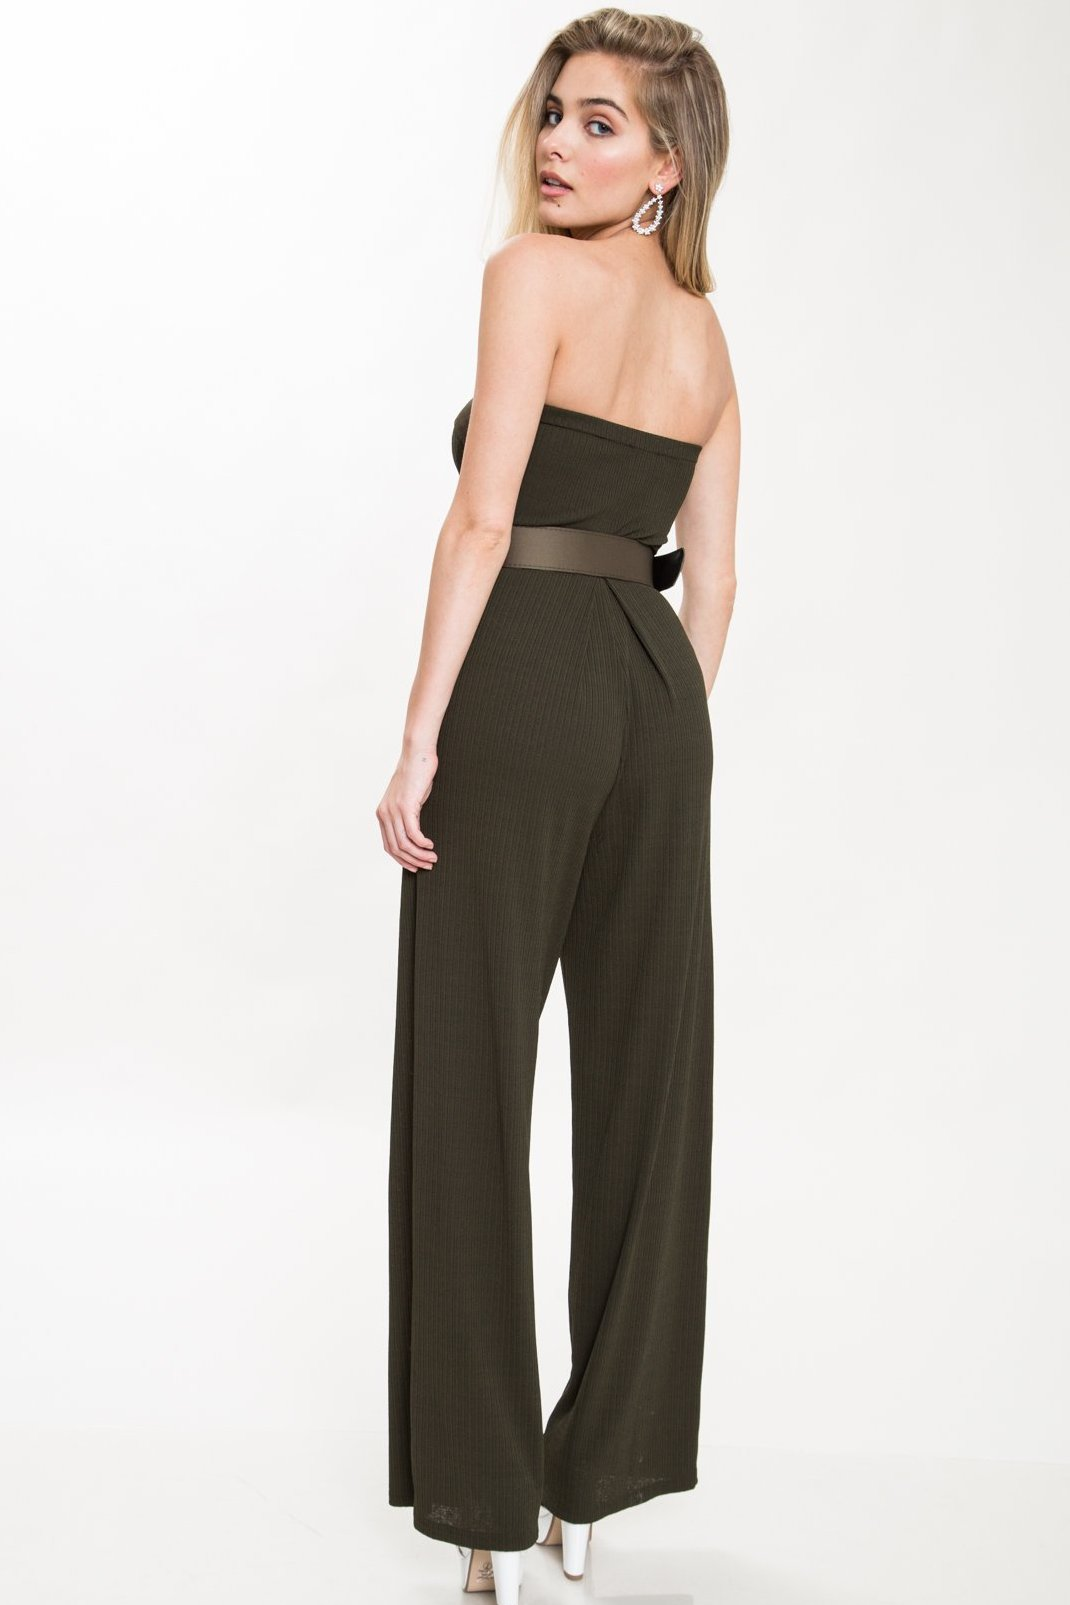 Moving On Belted Strapless Jumpsuit - Geegeebae